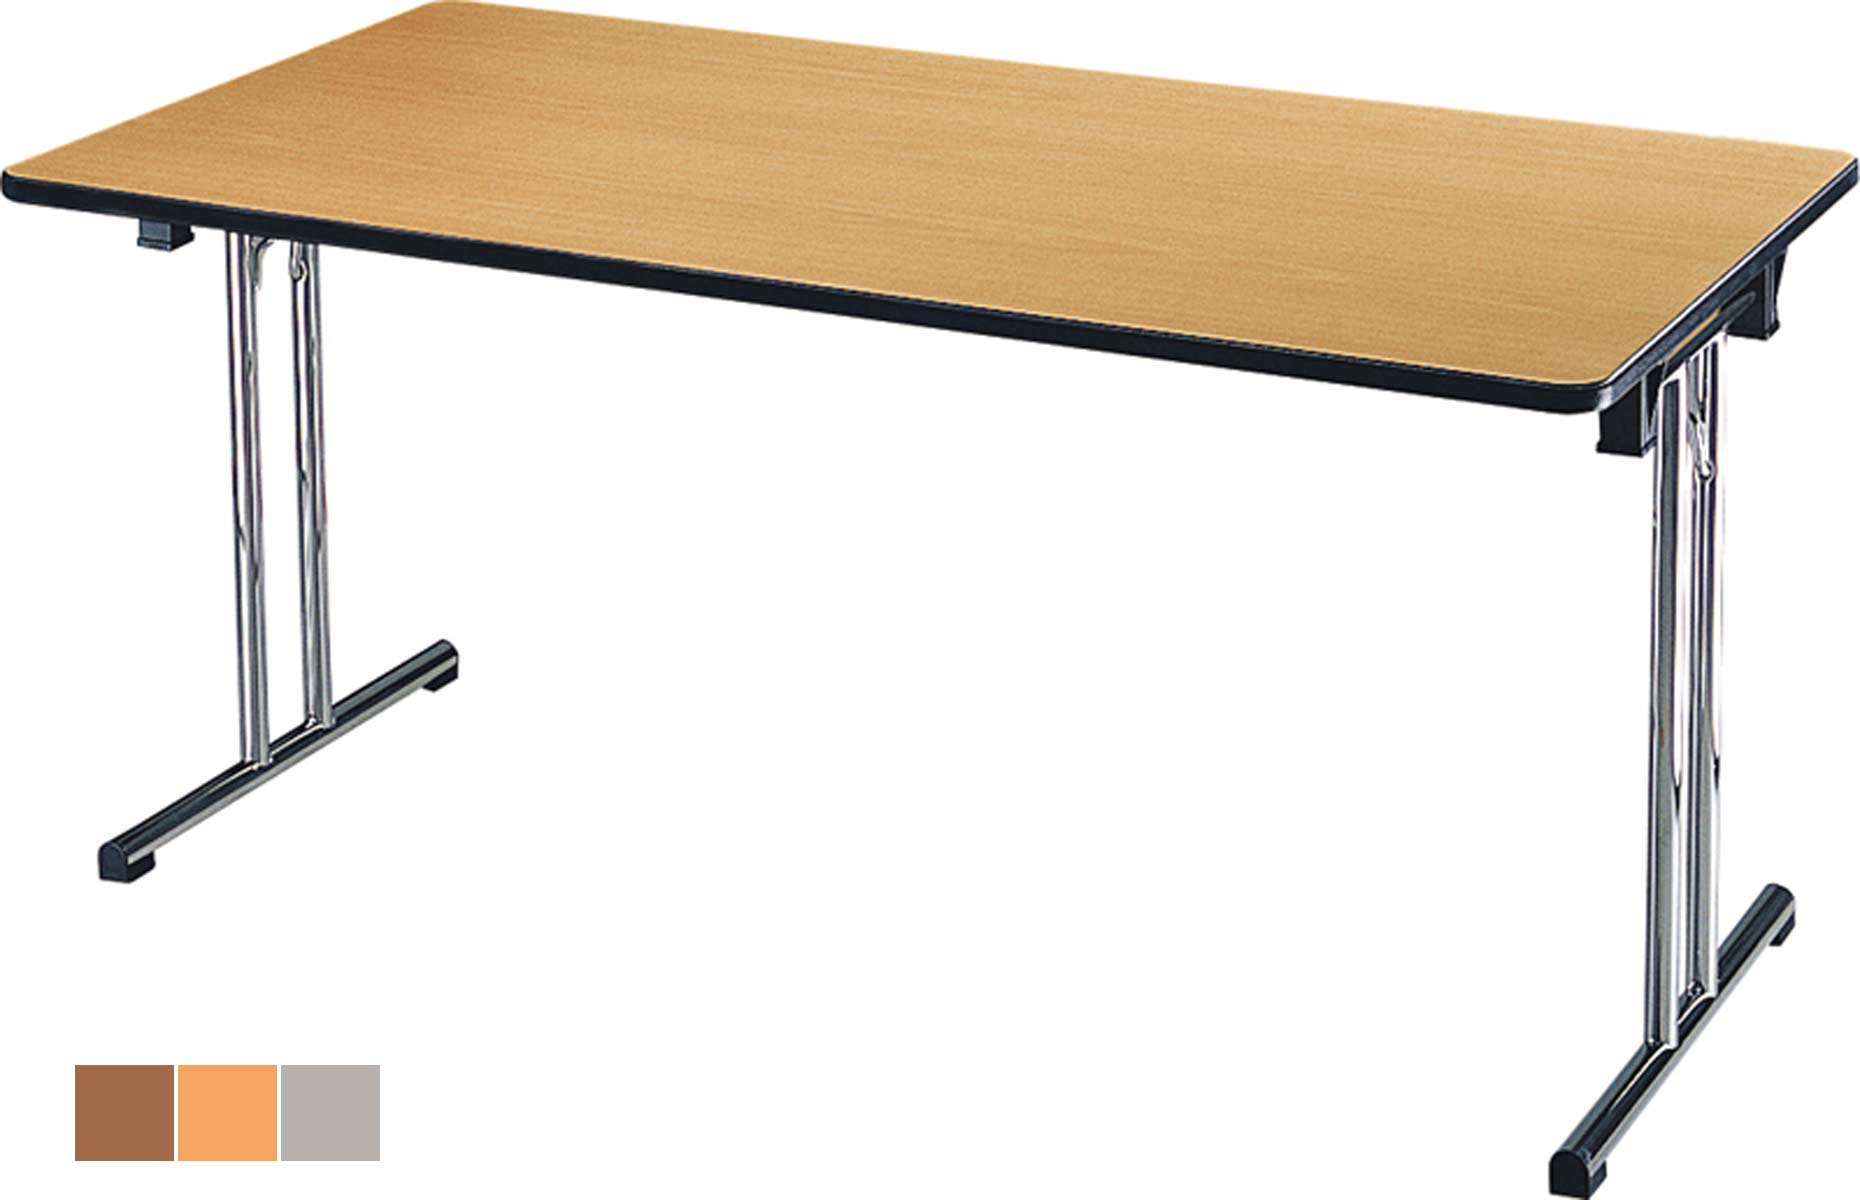 Table pliante rectangulaire alavus pour bureau ou r union - Tables pliantes castorama ...